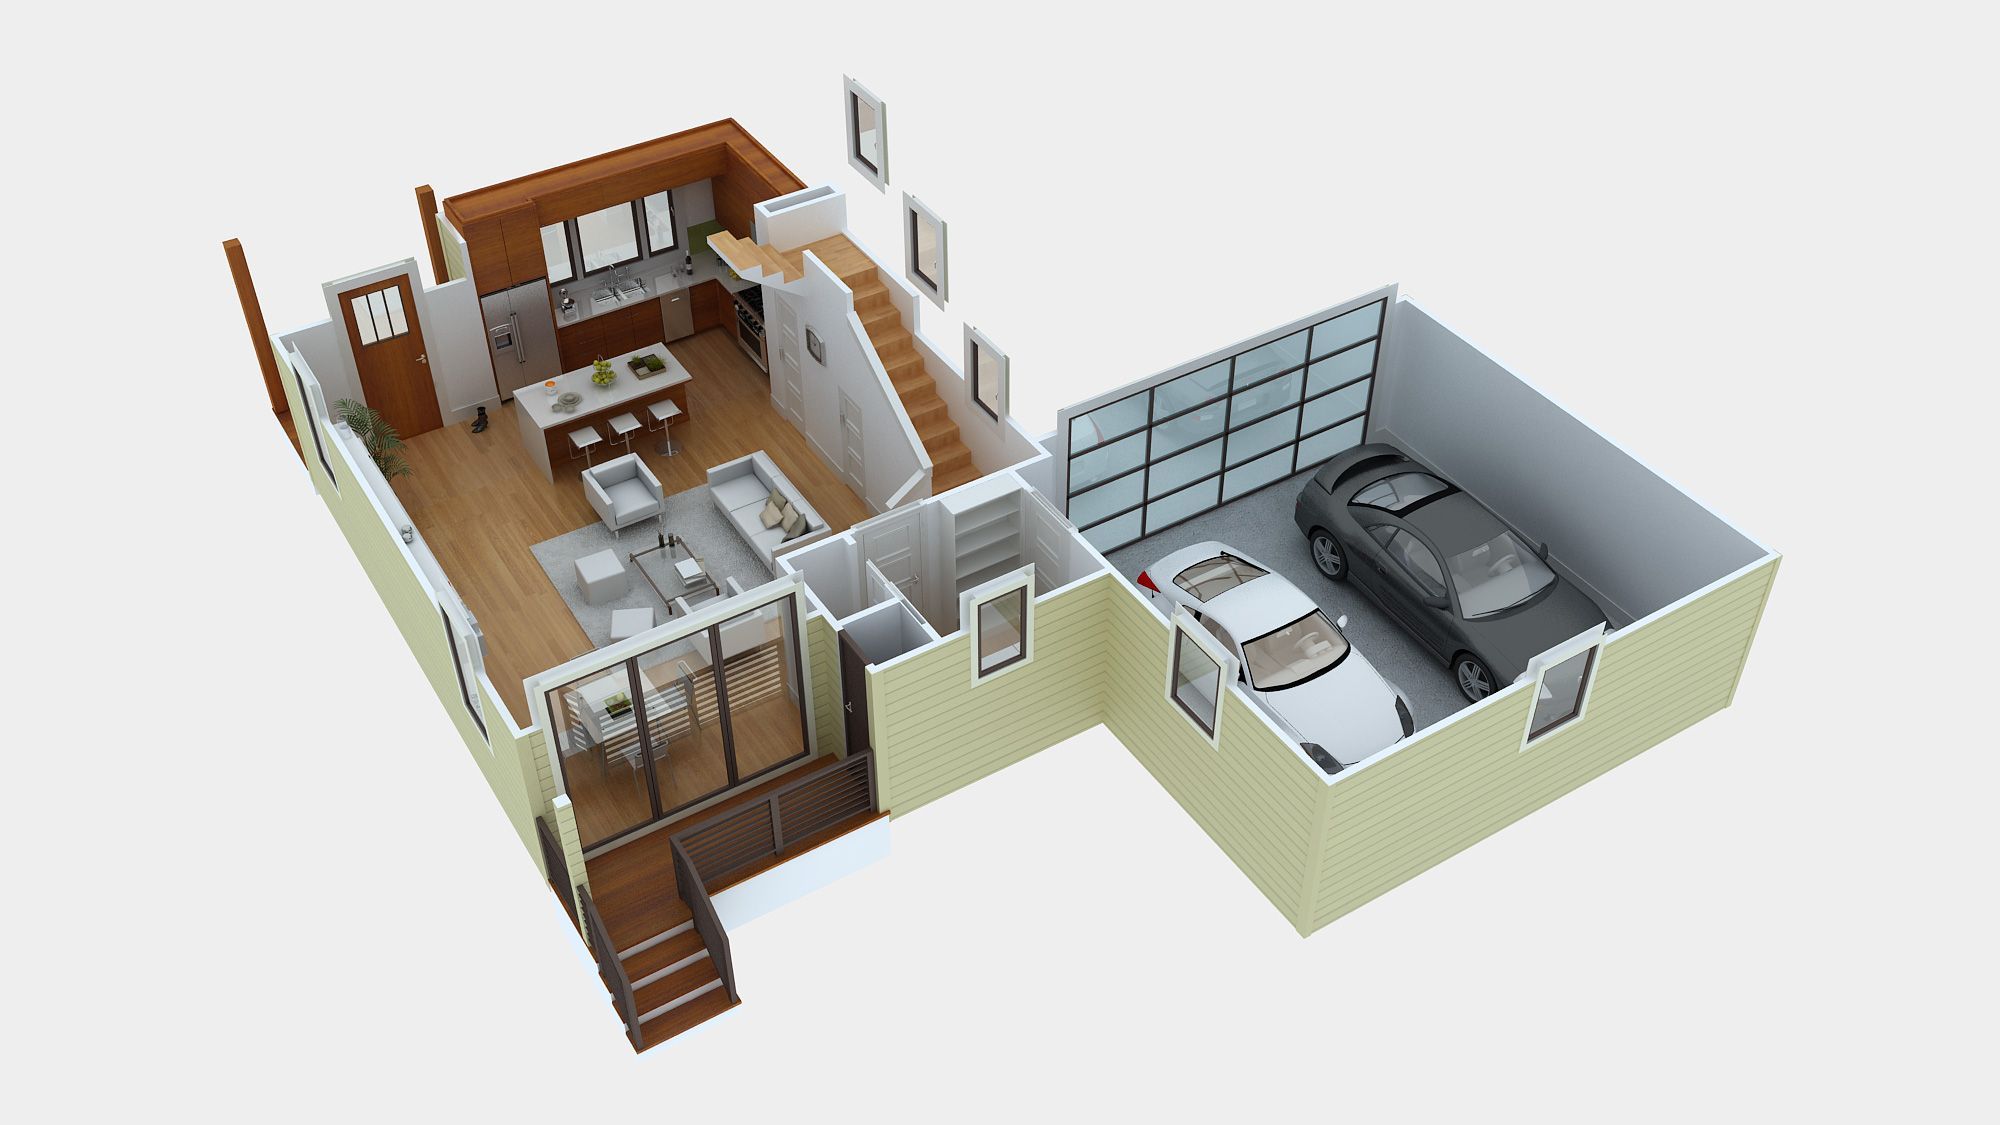 agreeable design your own house game 3d. 3d Floor Plan Software Free with minimalist staircase design for floor  plan software free download mac 2D AND 3D FLOOR PLAN DESIGN Pinterest